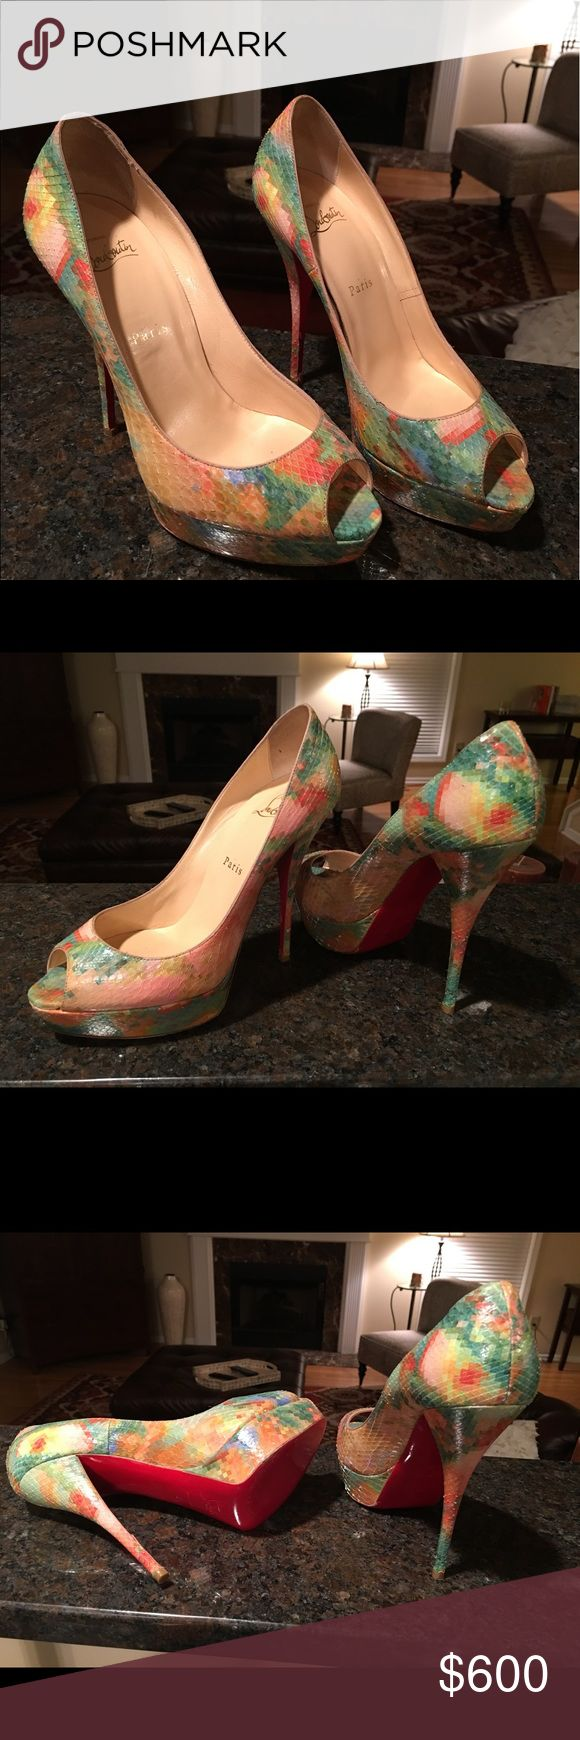 Christian Louboutin Troca 140 Python Pixel size 39 Pre-owned.  In good condition. Minor damage on heel, a scrape and one scale is lifted a little because of it. Please see pictures.  Fits 8.5 - 9 US Christian Louboutin Shoes Heels